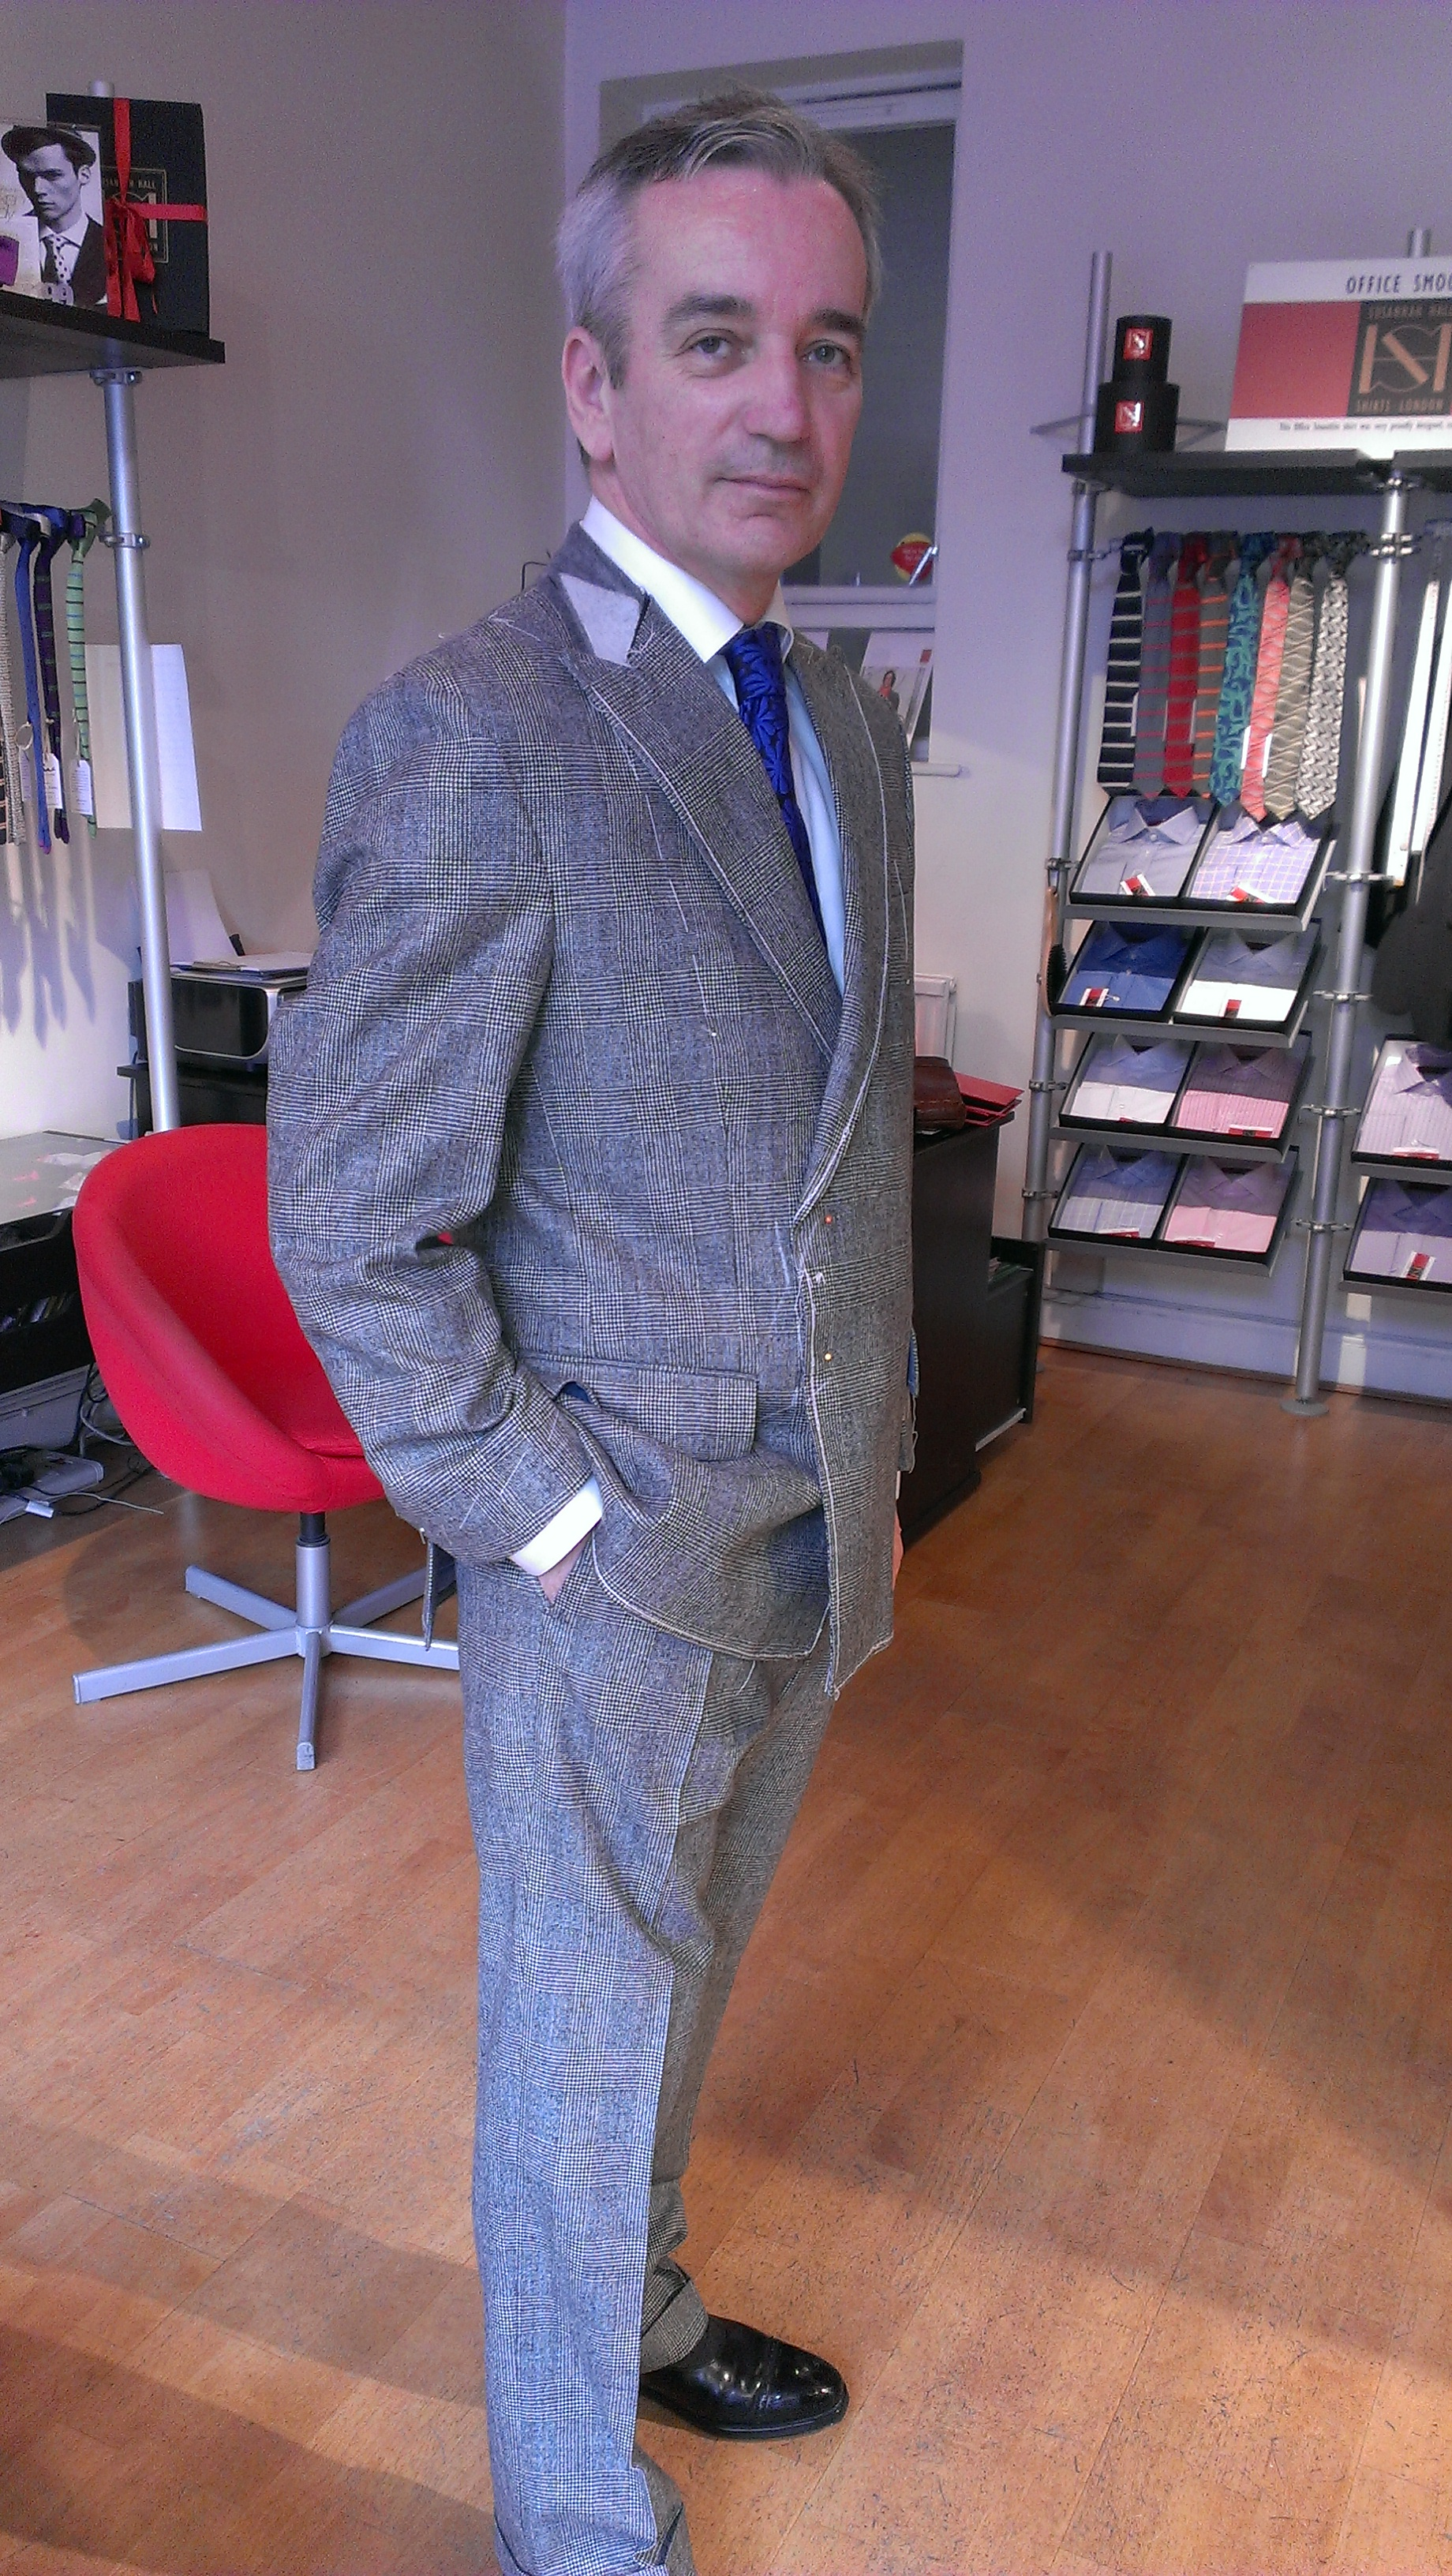 prince-of-wales-flannel-vintage-suit-fitting-all-uk-made.jpg